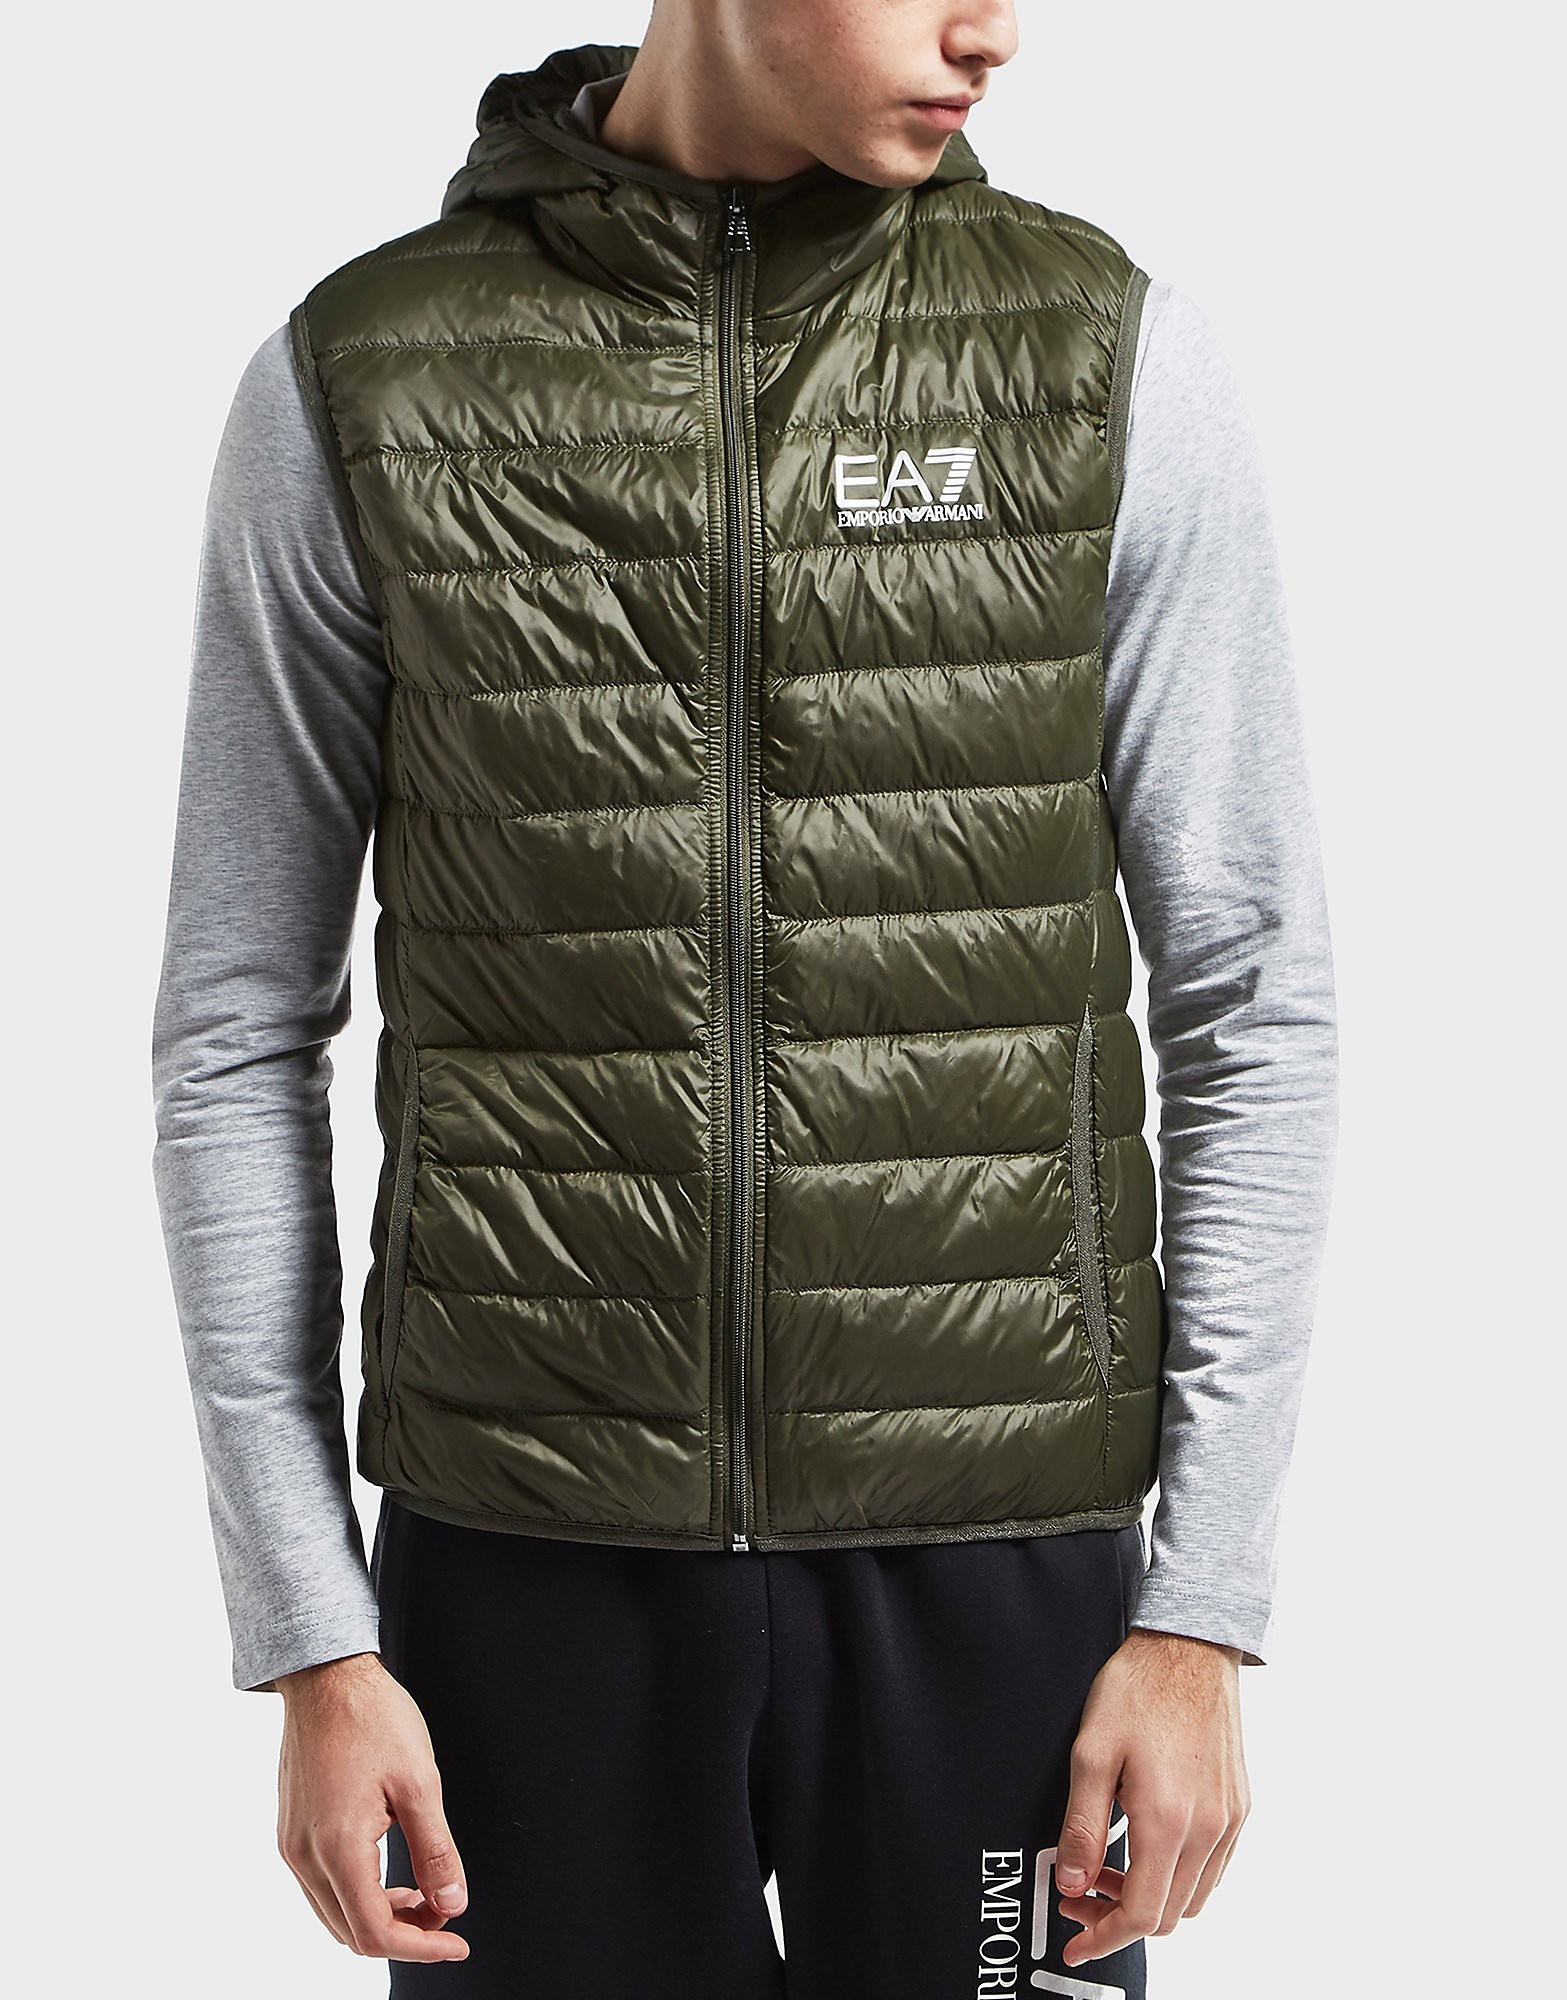 Emporio Armani EA7 Hooded Gilet - Exclusive